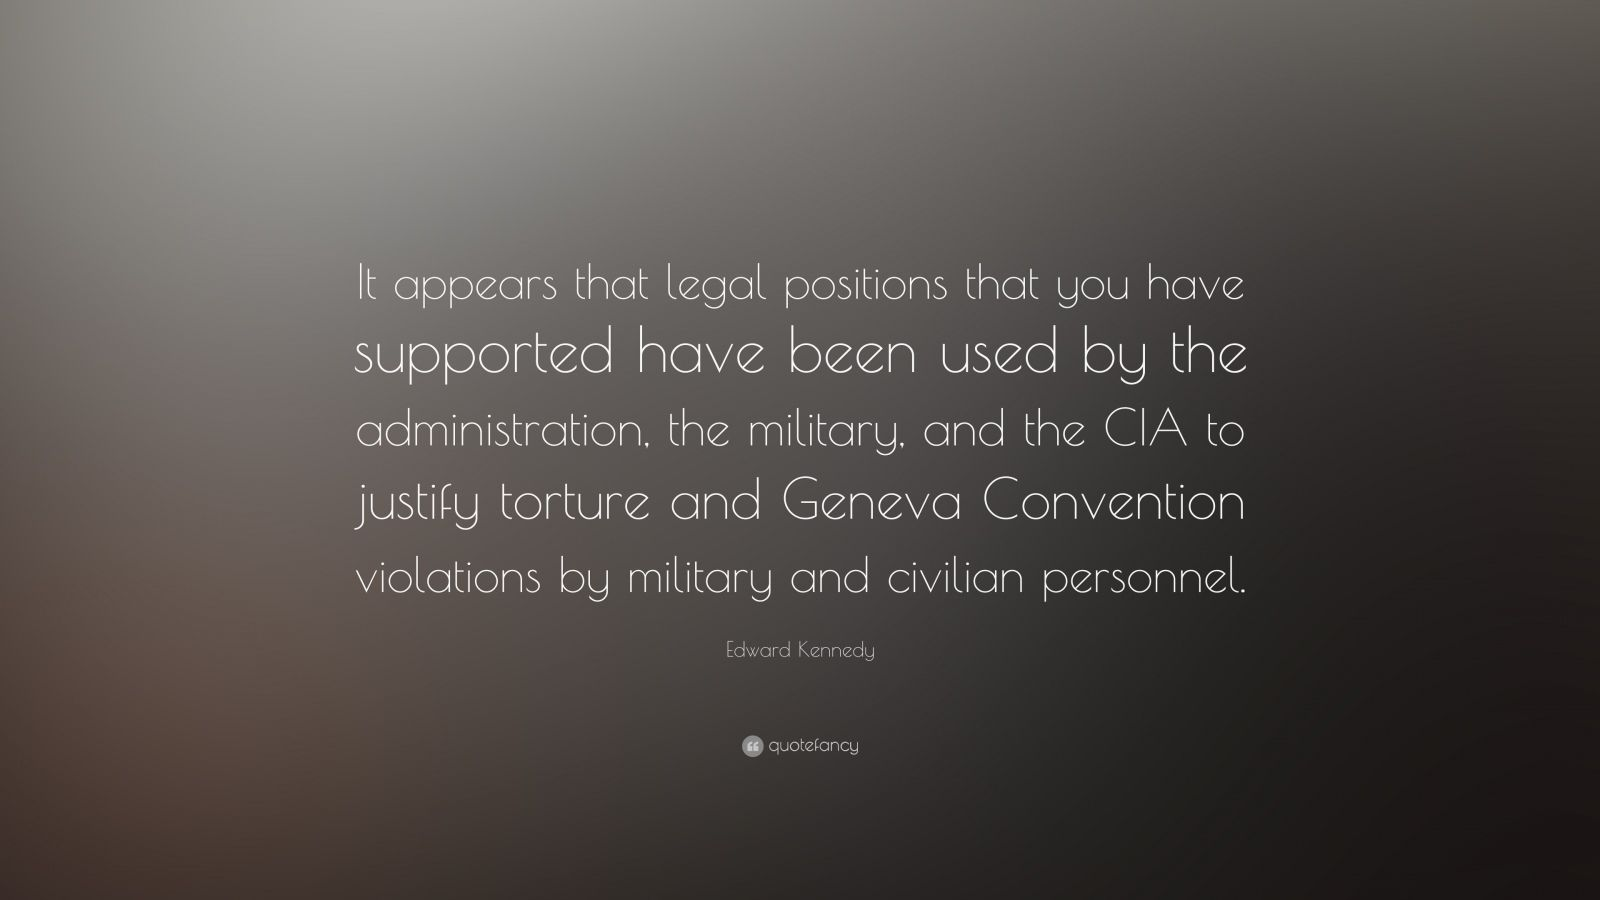 """Edward Kennedy Quote: """"It appears that legal positions that you have supported have been used by the administration, the military, and the CIA to justify torture and Geneva Convention violations by military and civilian personnel."""""""